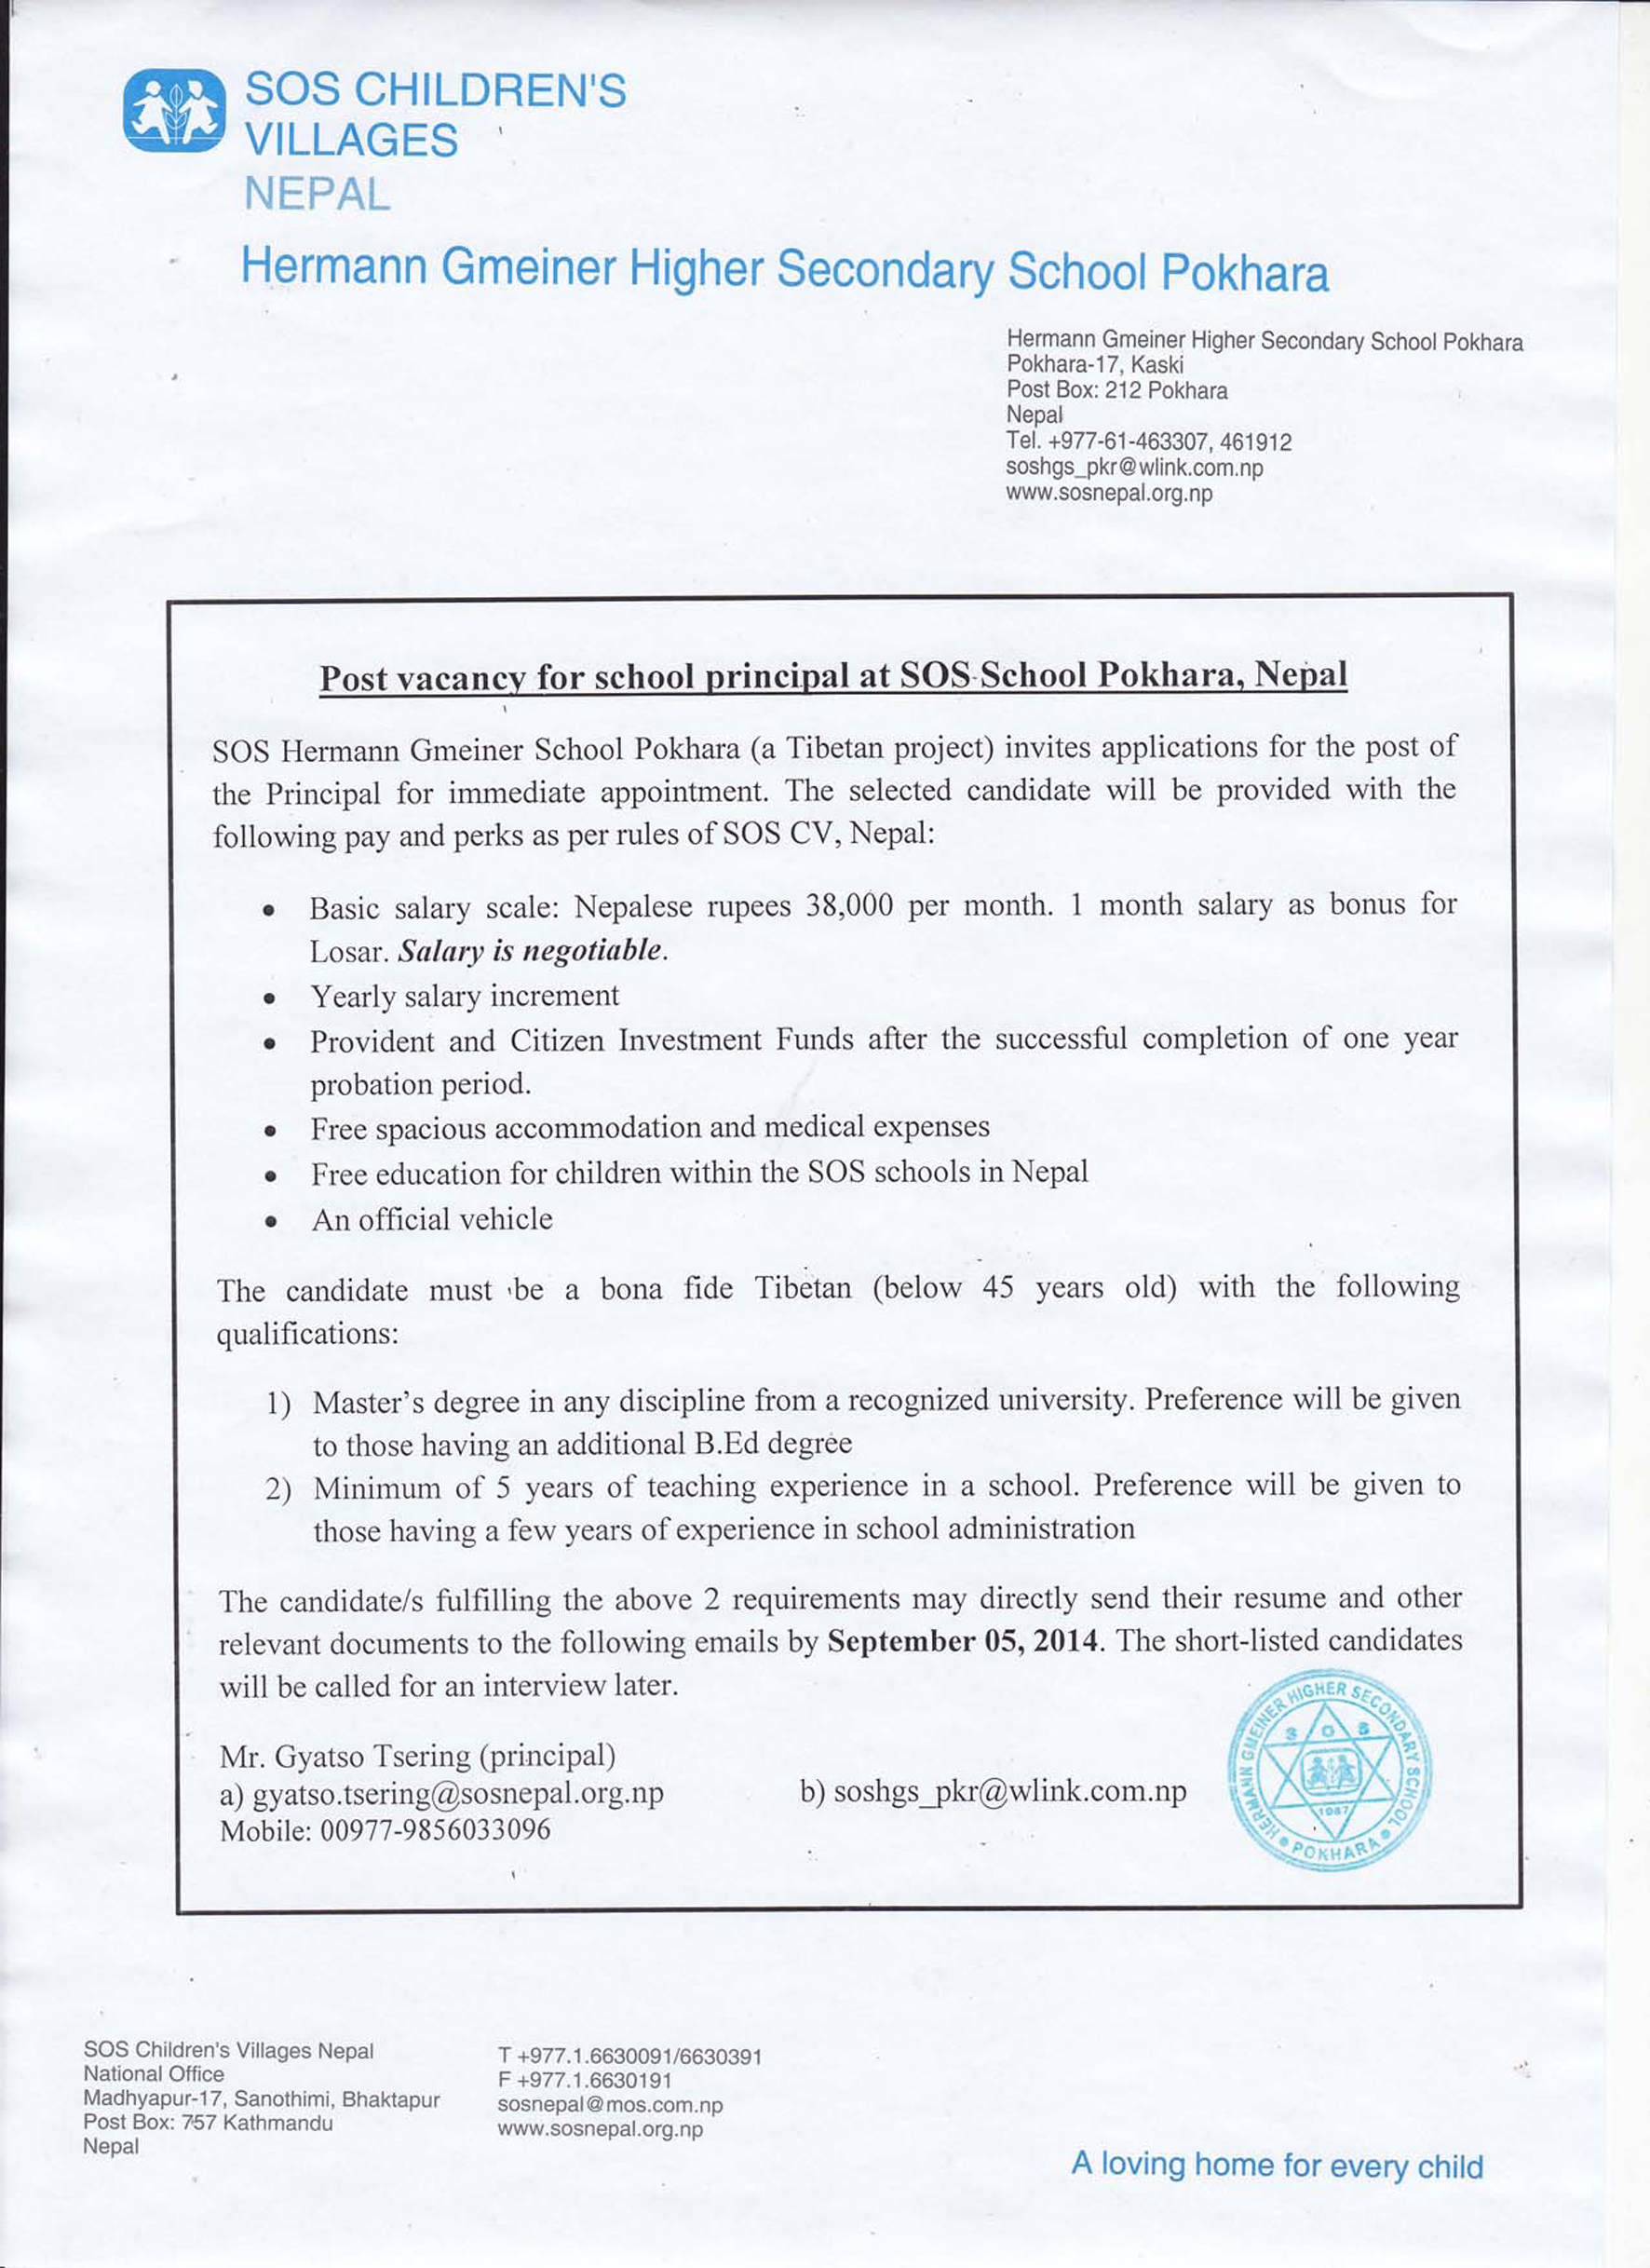 Post Vacancy of Principal 1